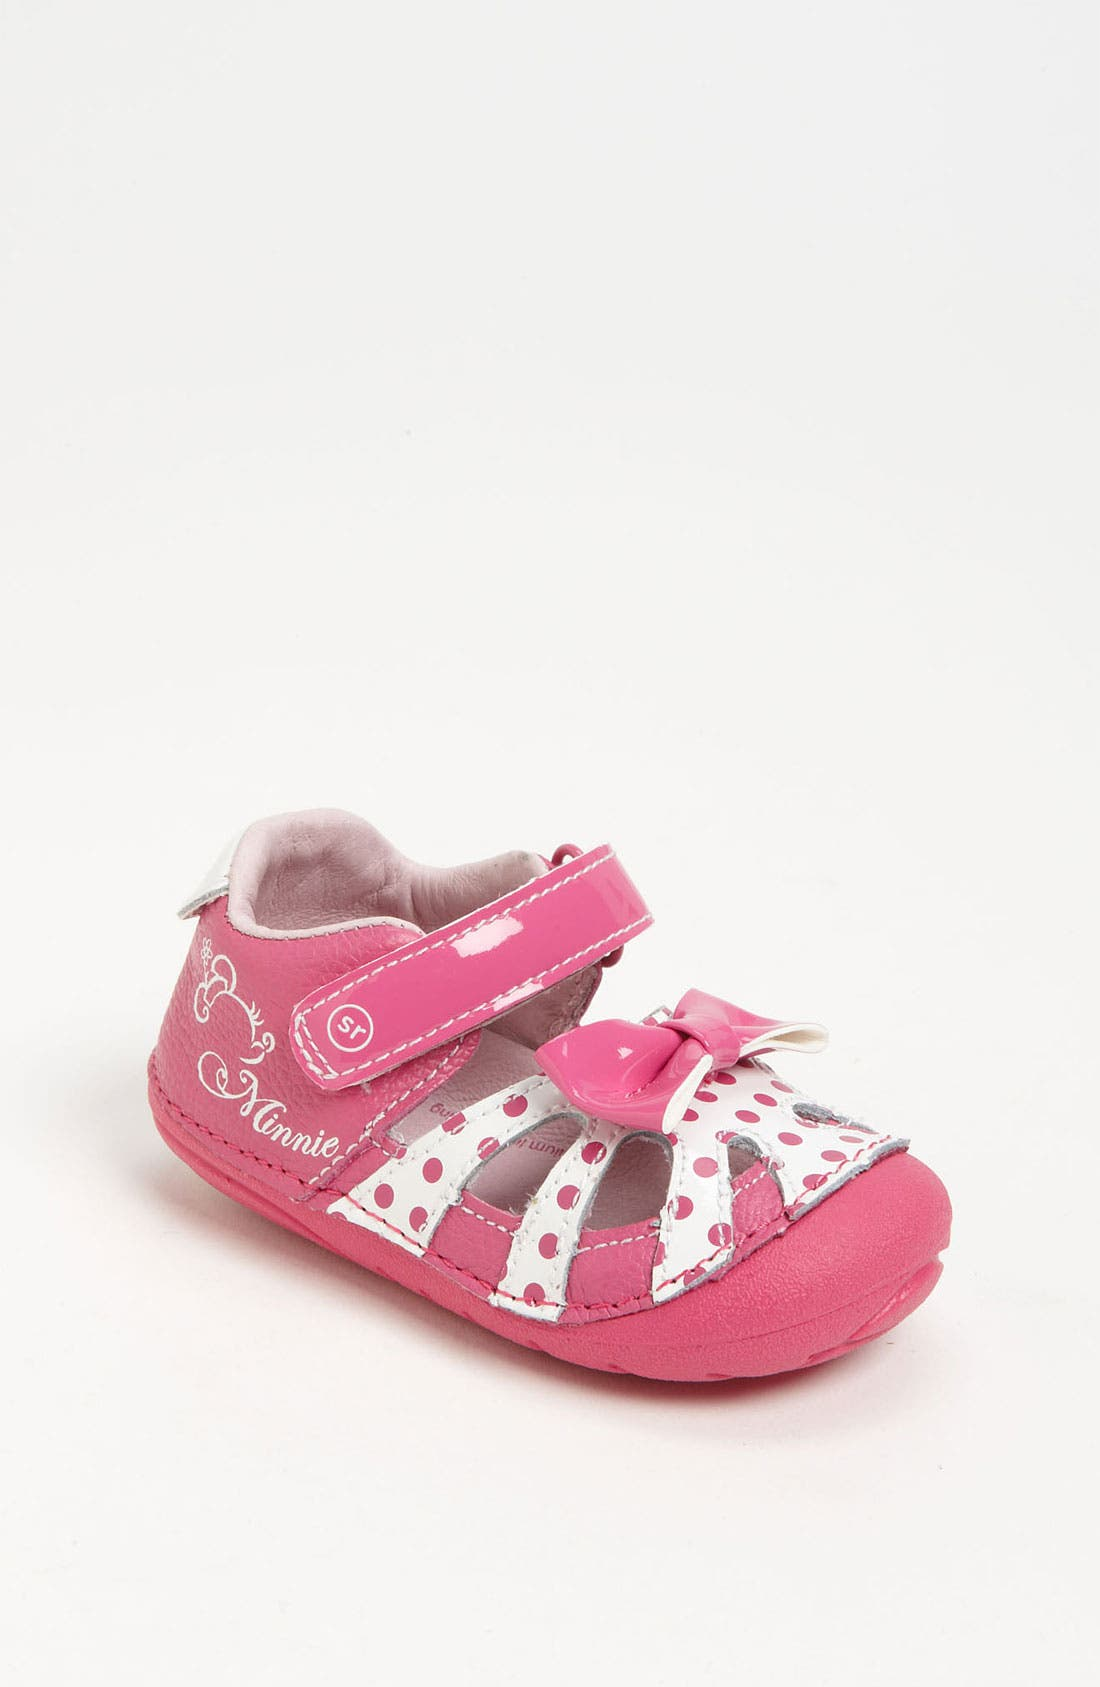 Alternate Image 1 Selected - Stride Rite 'Minnie' Sandal (Baby & Walker)